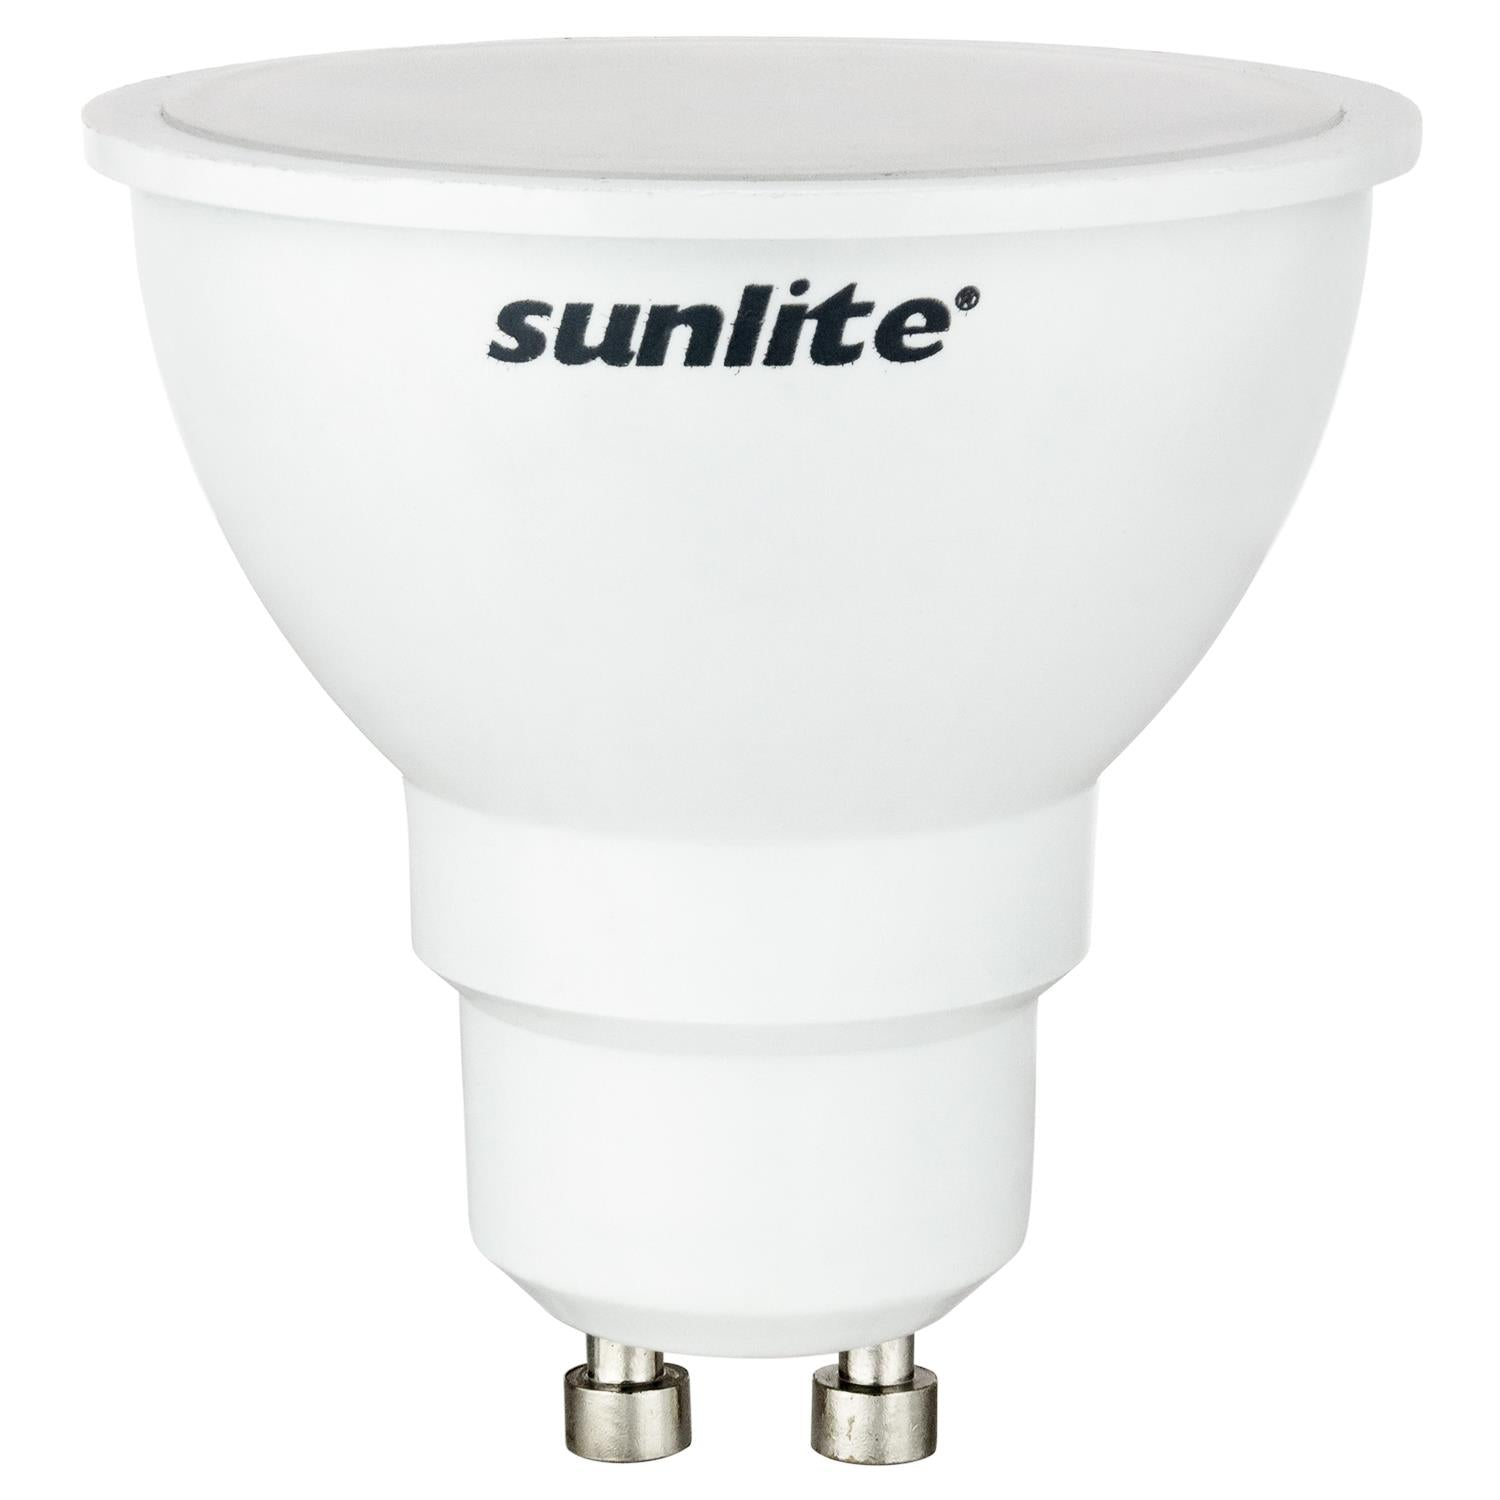 SUNLITE 80306-SU 220v 6 Watt MR16 Lamp GU10 Base 4000K Cool White